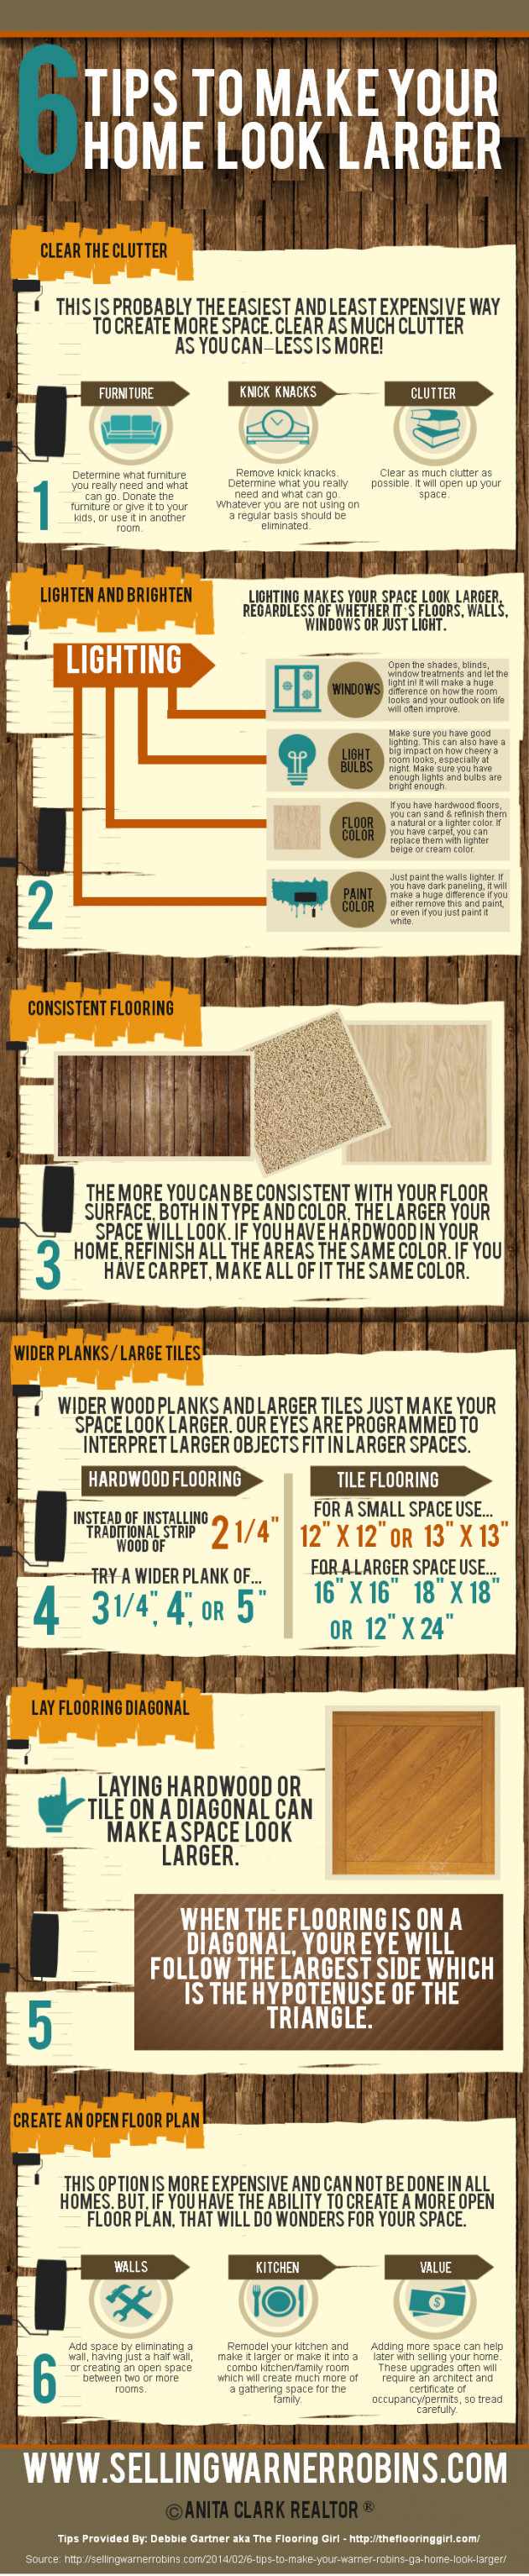 Six Tips To Make Your Home Look Larger